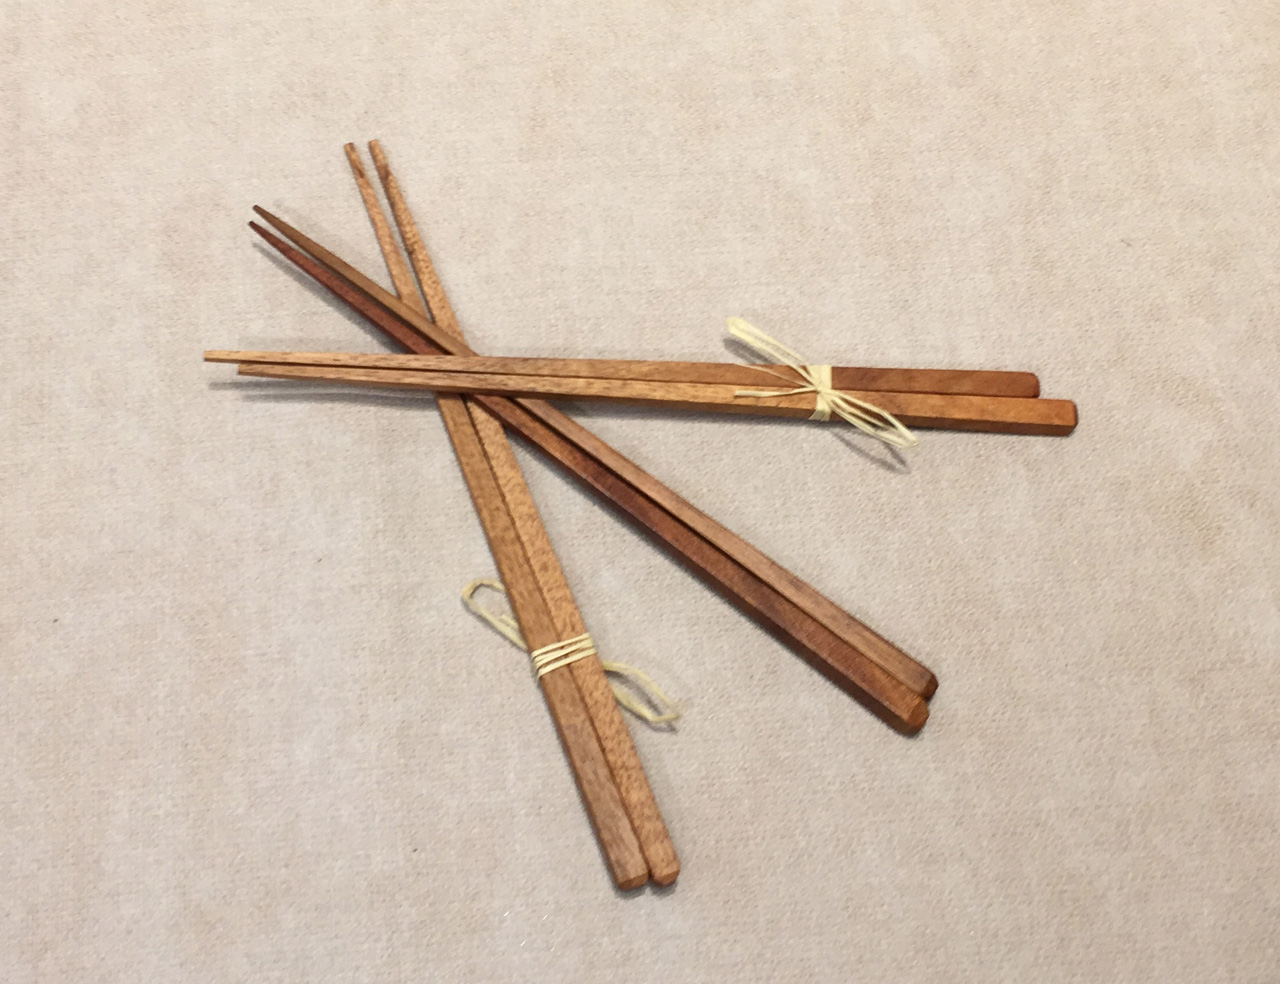 Three wood chopsticks